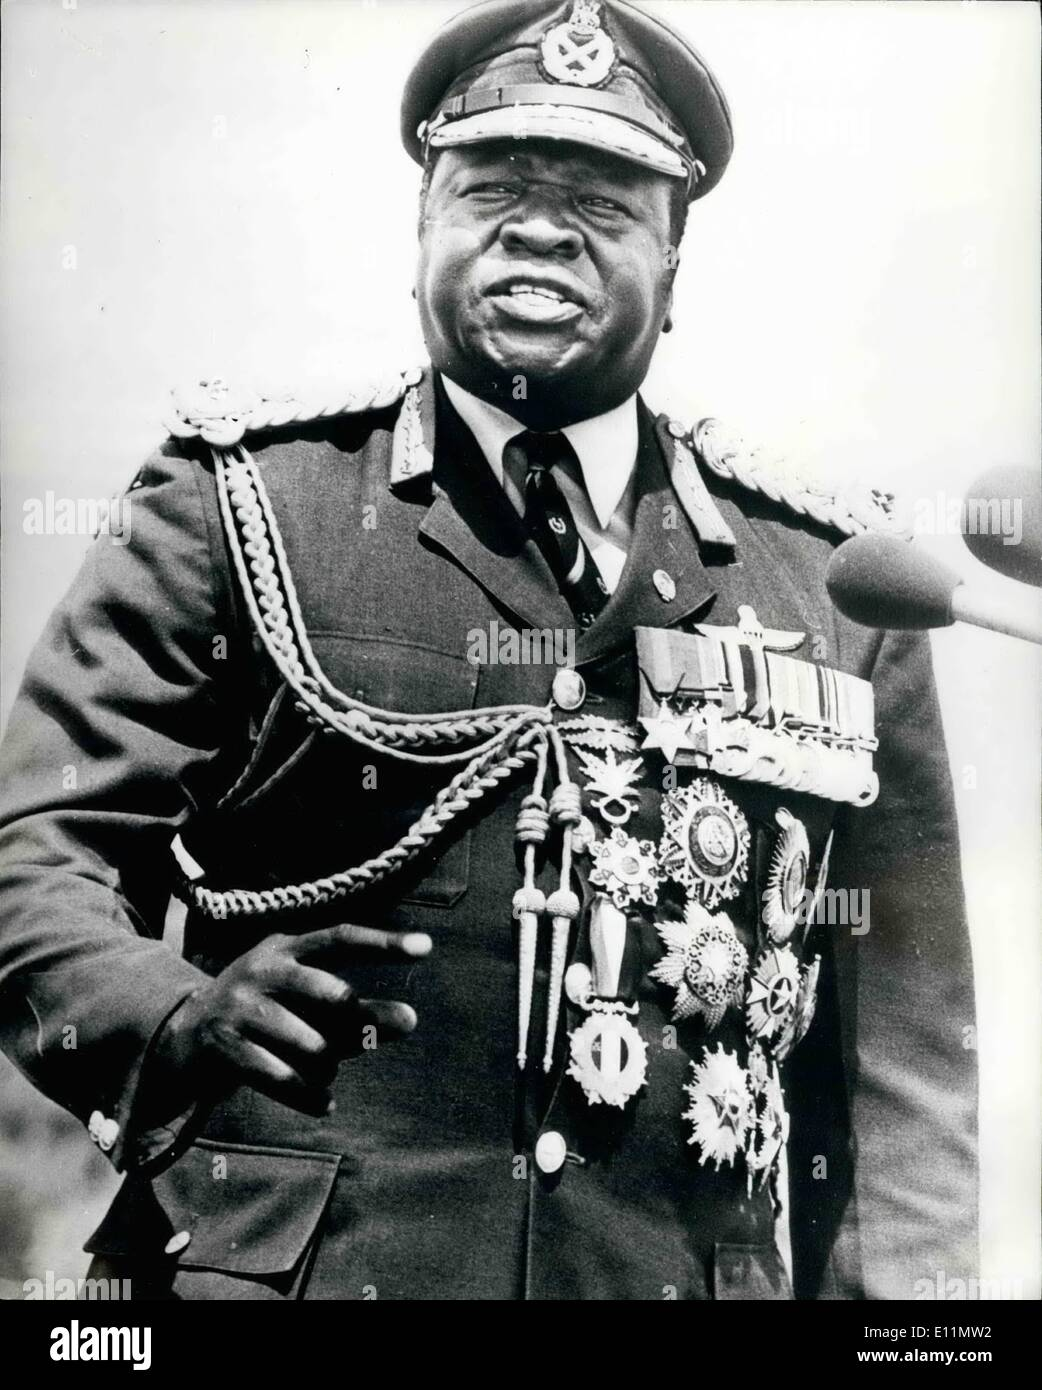 Mar. 03, 1979 - INVADING TANKS CUT OFF AMIN It was reported today at President Amin and some of his Army officers had been trapped in Entebbe by Tanzanian tanks. The tanks are said to control the road to the Ugandan capital of Kampala 21 miles away. PHOTO SHOWS President Amin dressed in his field Marshall's uniform ready to do battle with the invaders. - Stock Image